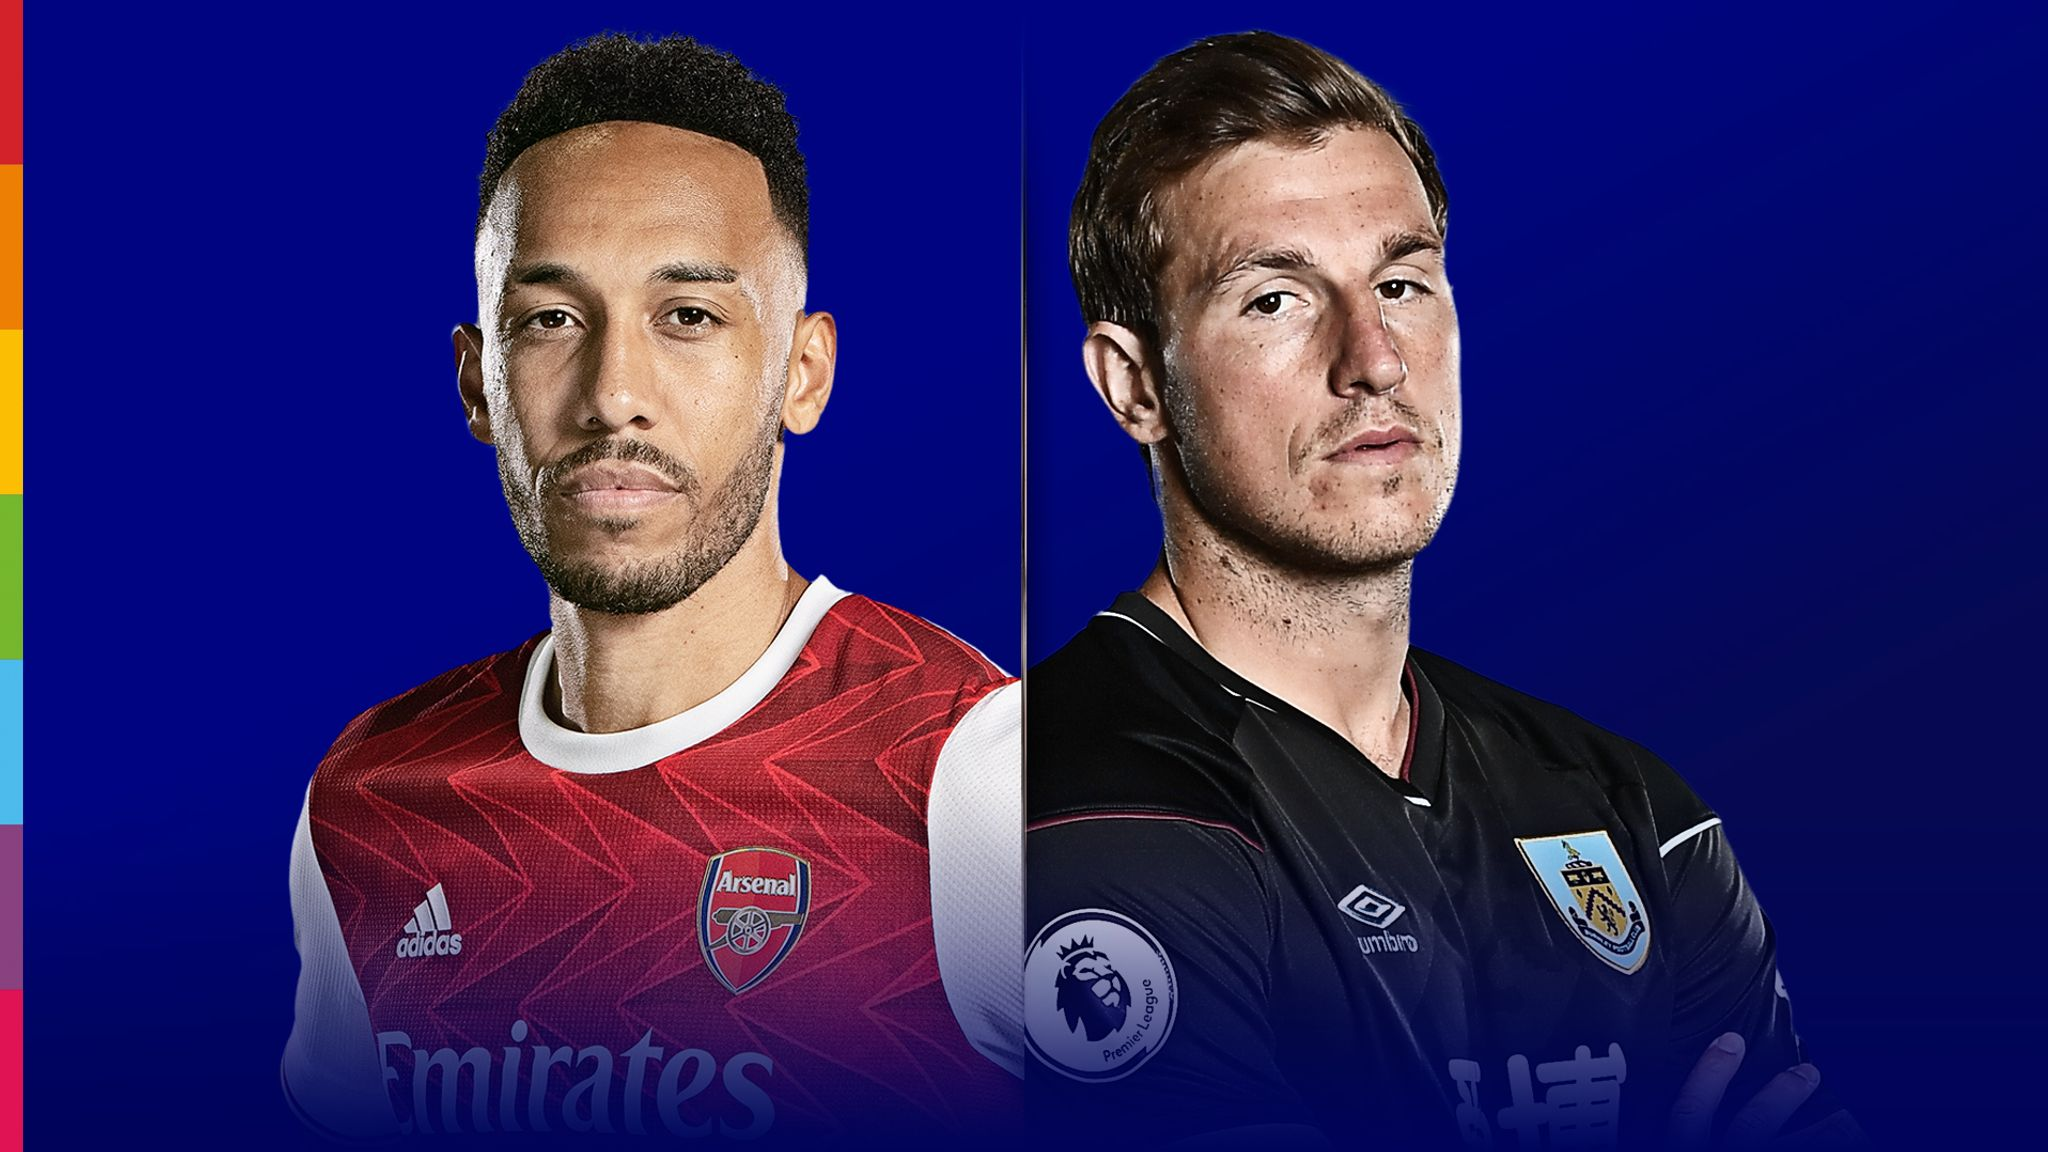 Arsenal vs burnley betting preview bet365 football betting rules in poker